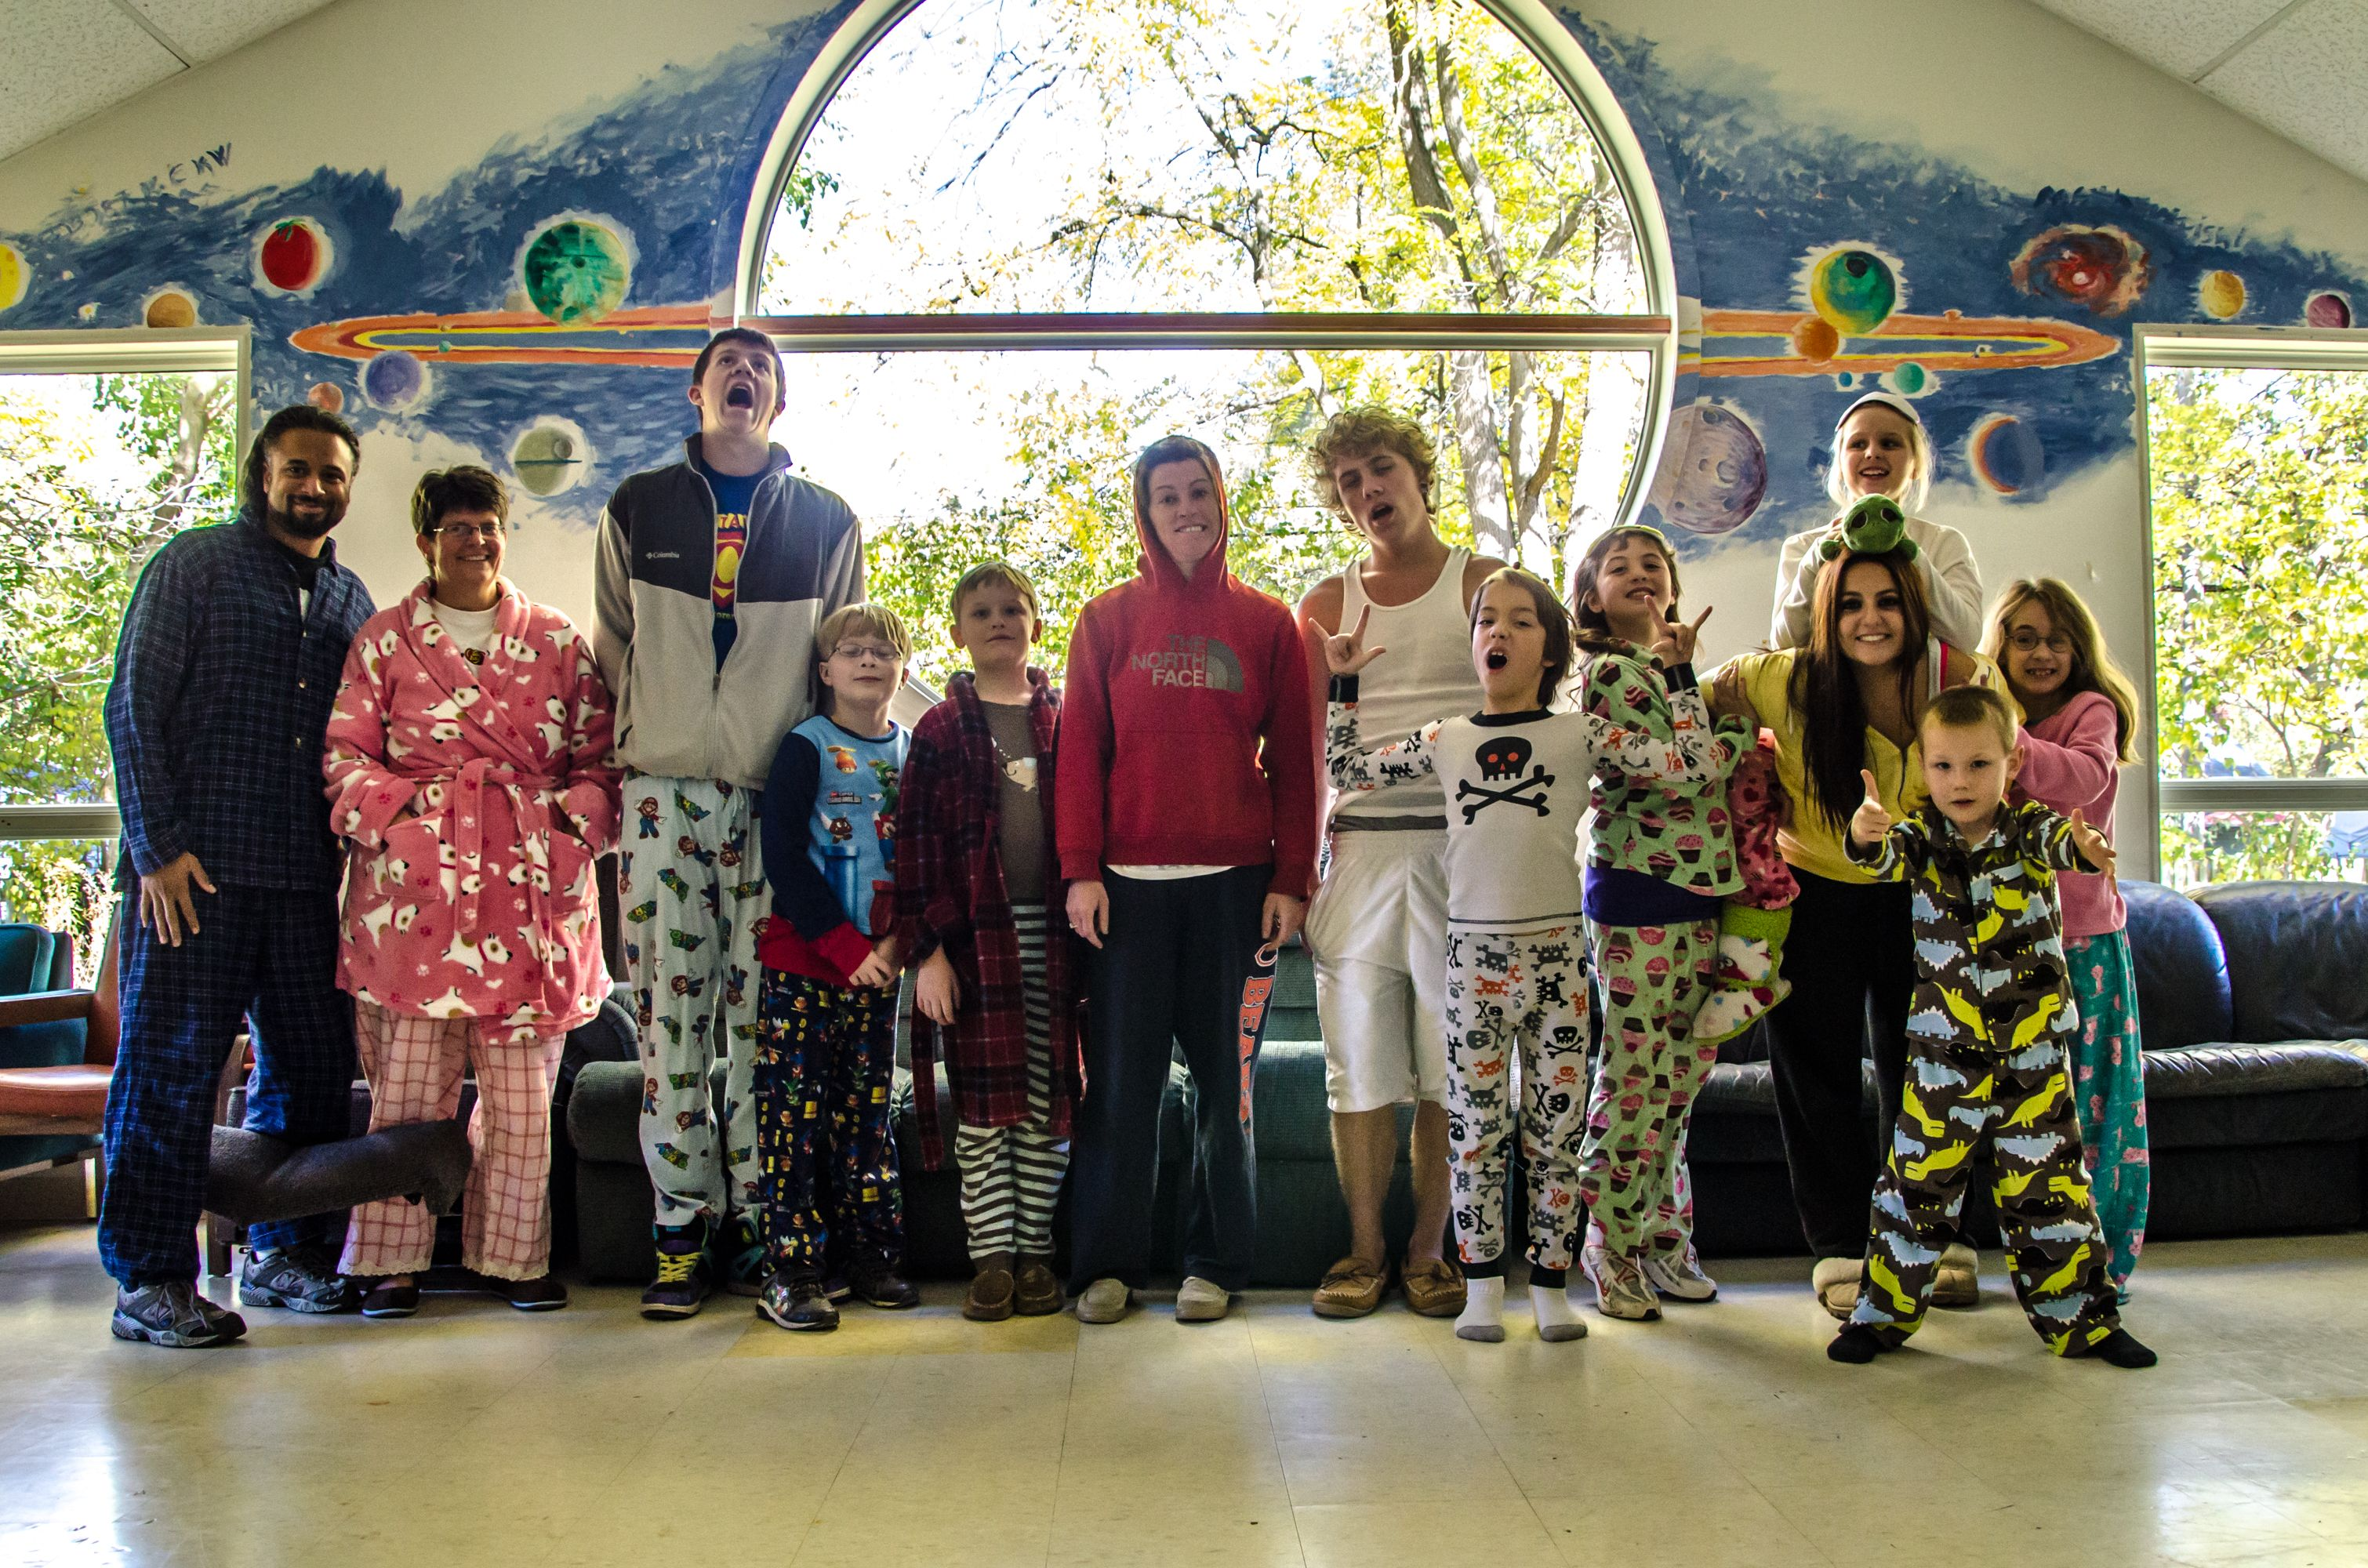 Pajama Day With Images